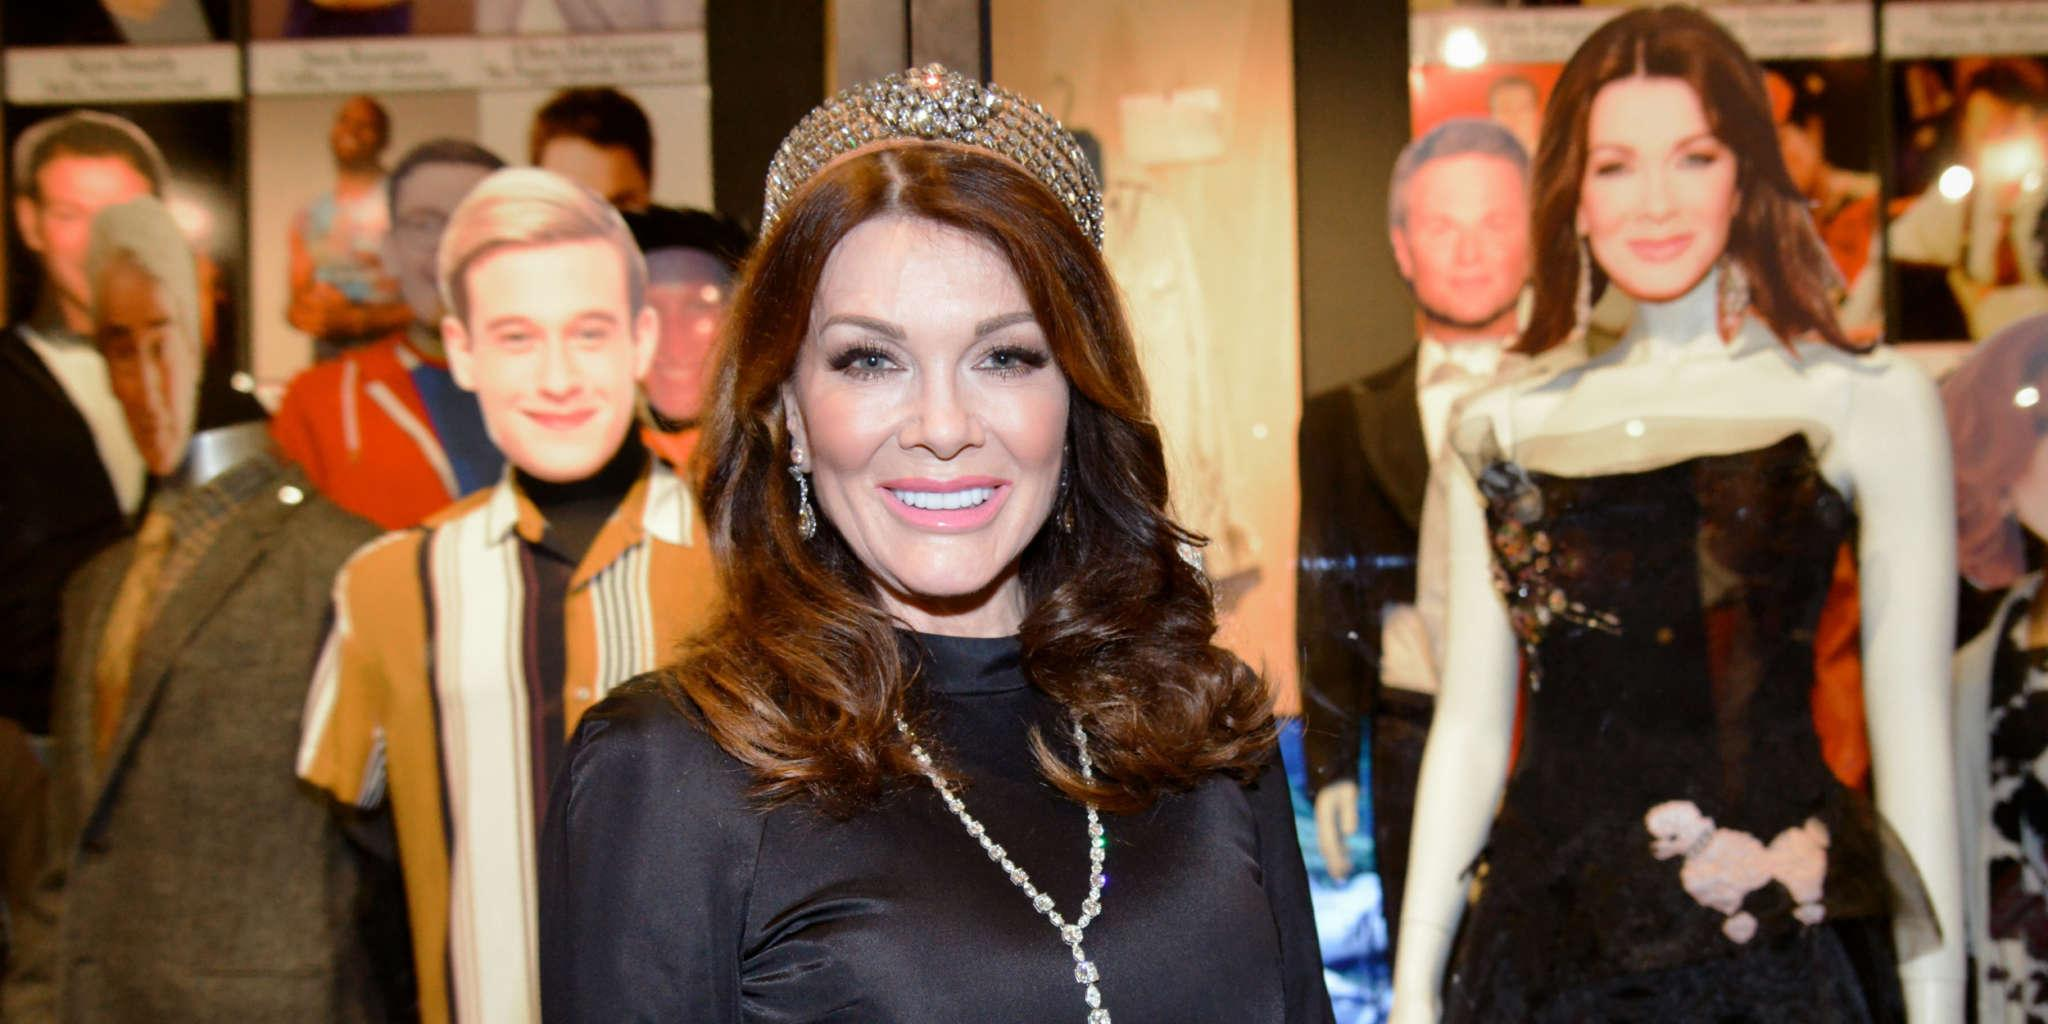 Lisa Vanderpump - Andy Cohen Confirms She Wasn't At The RHOBH Reunion Taping